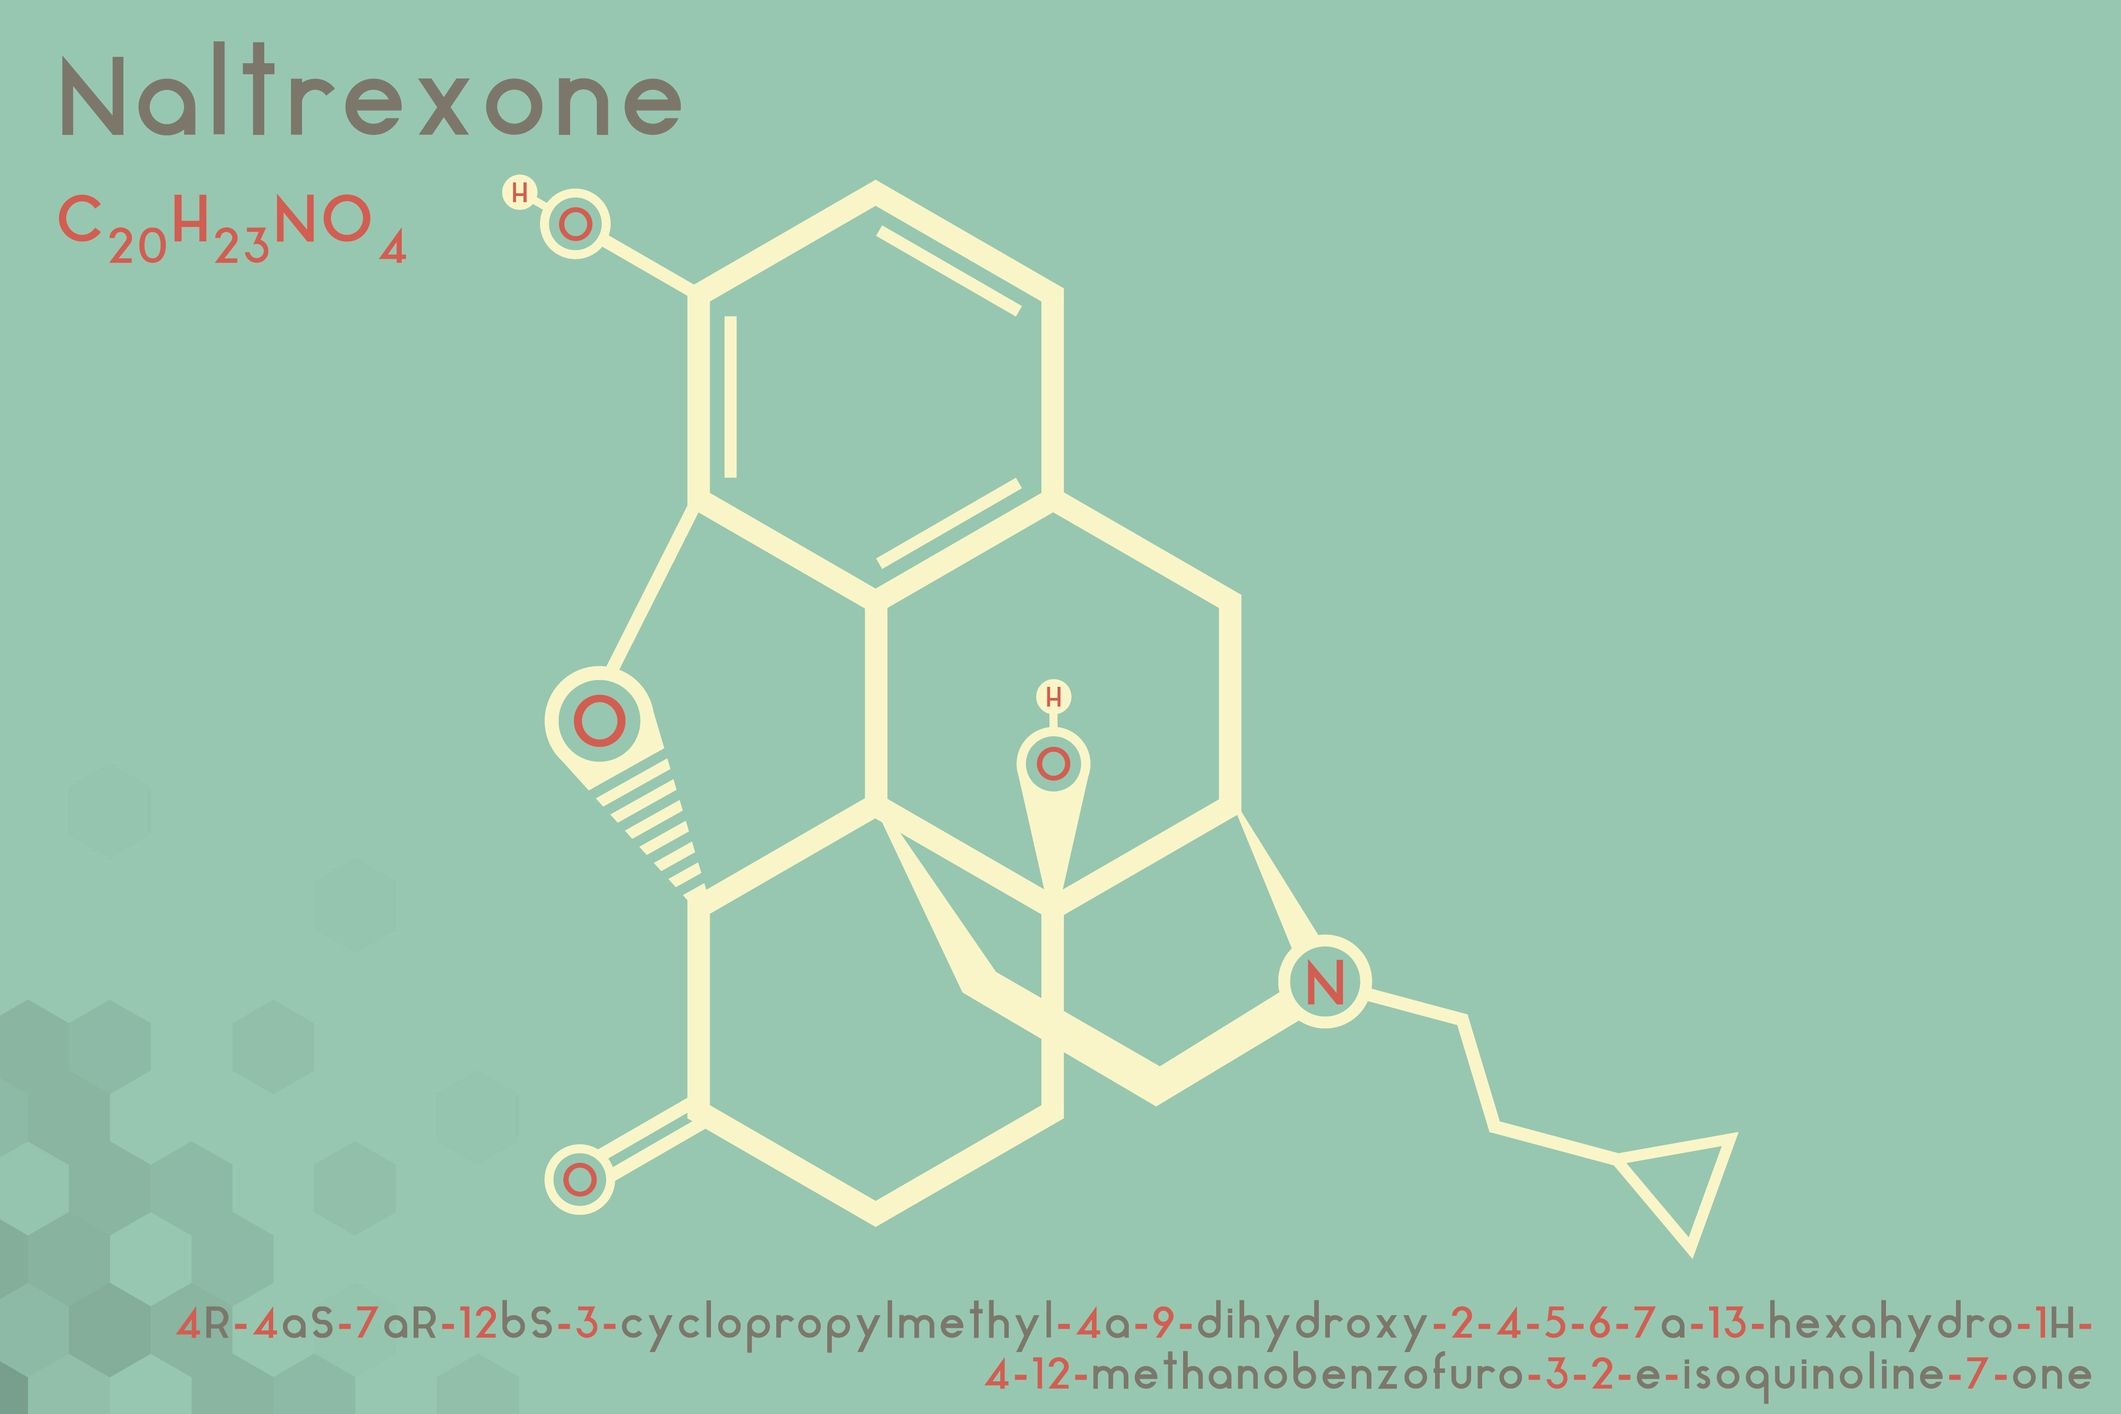 LDN Low Dose Naltrexone in customized dosage forms